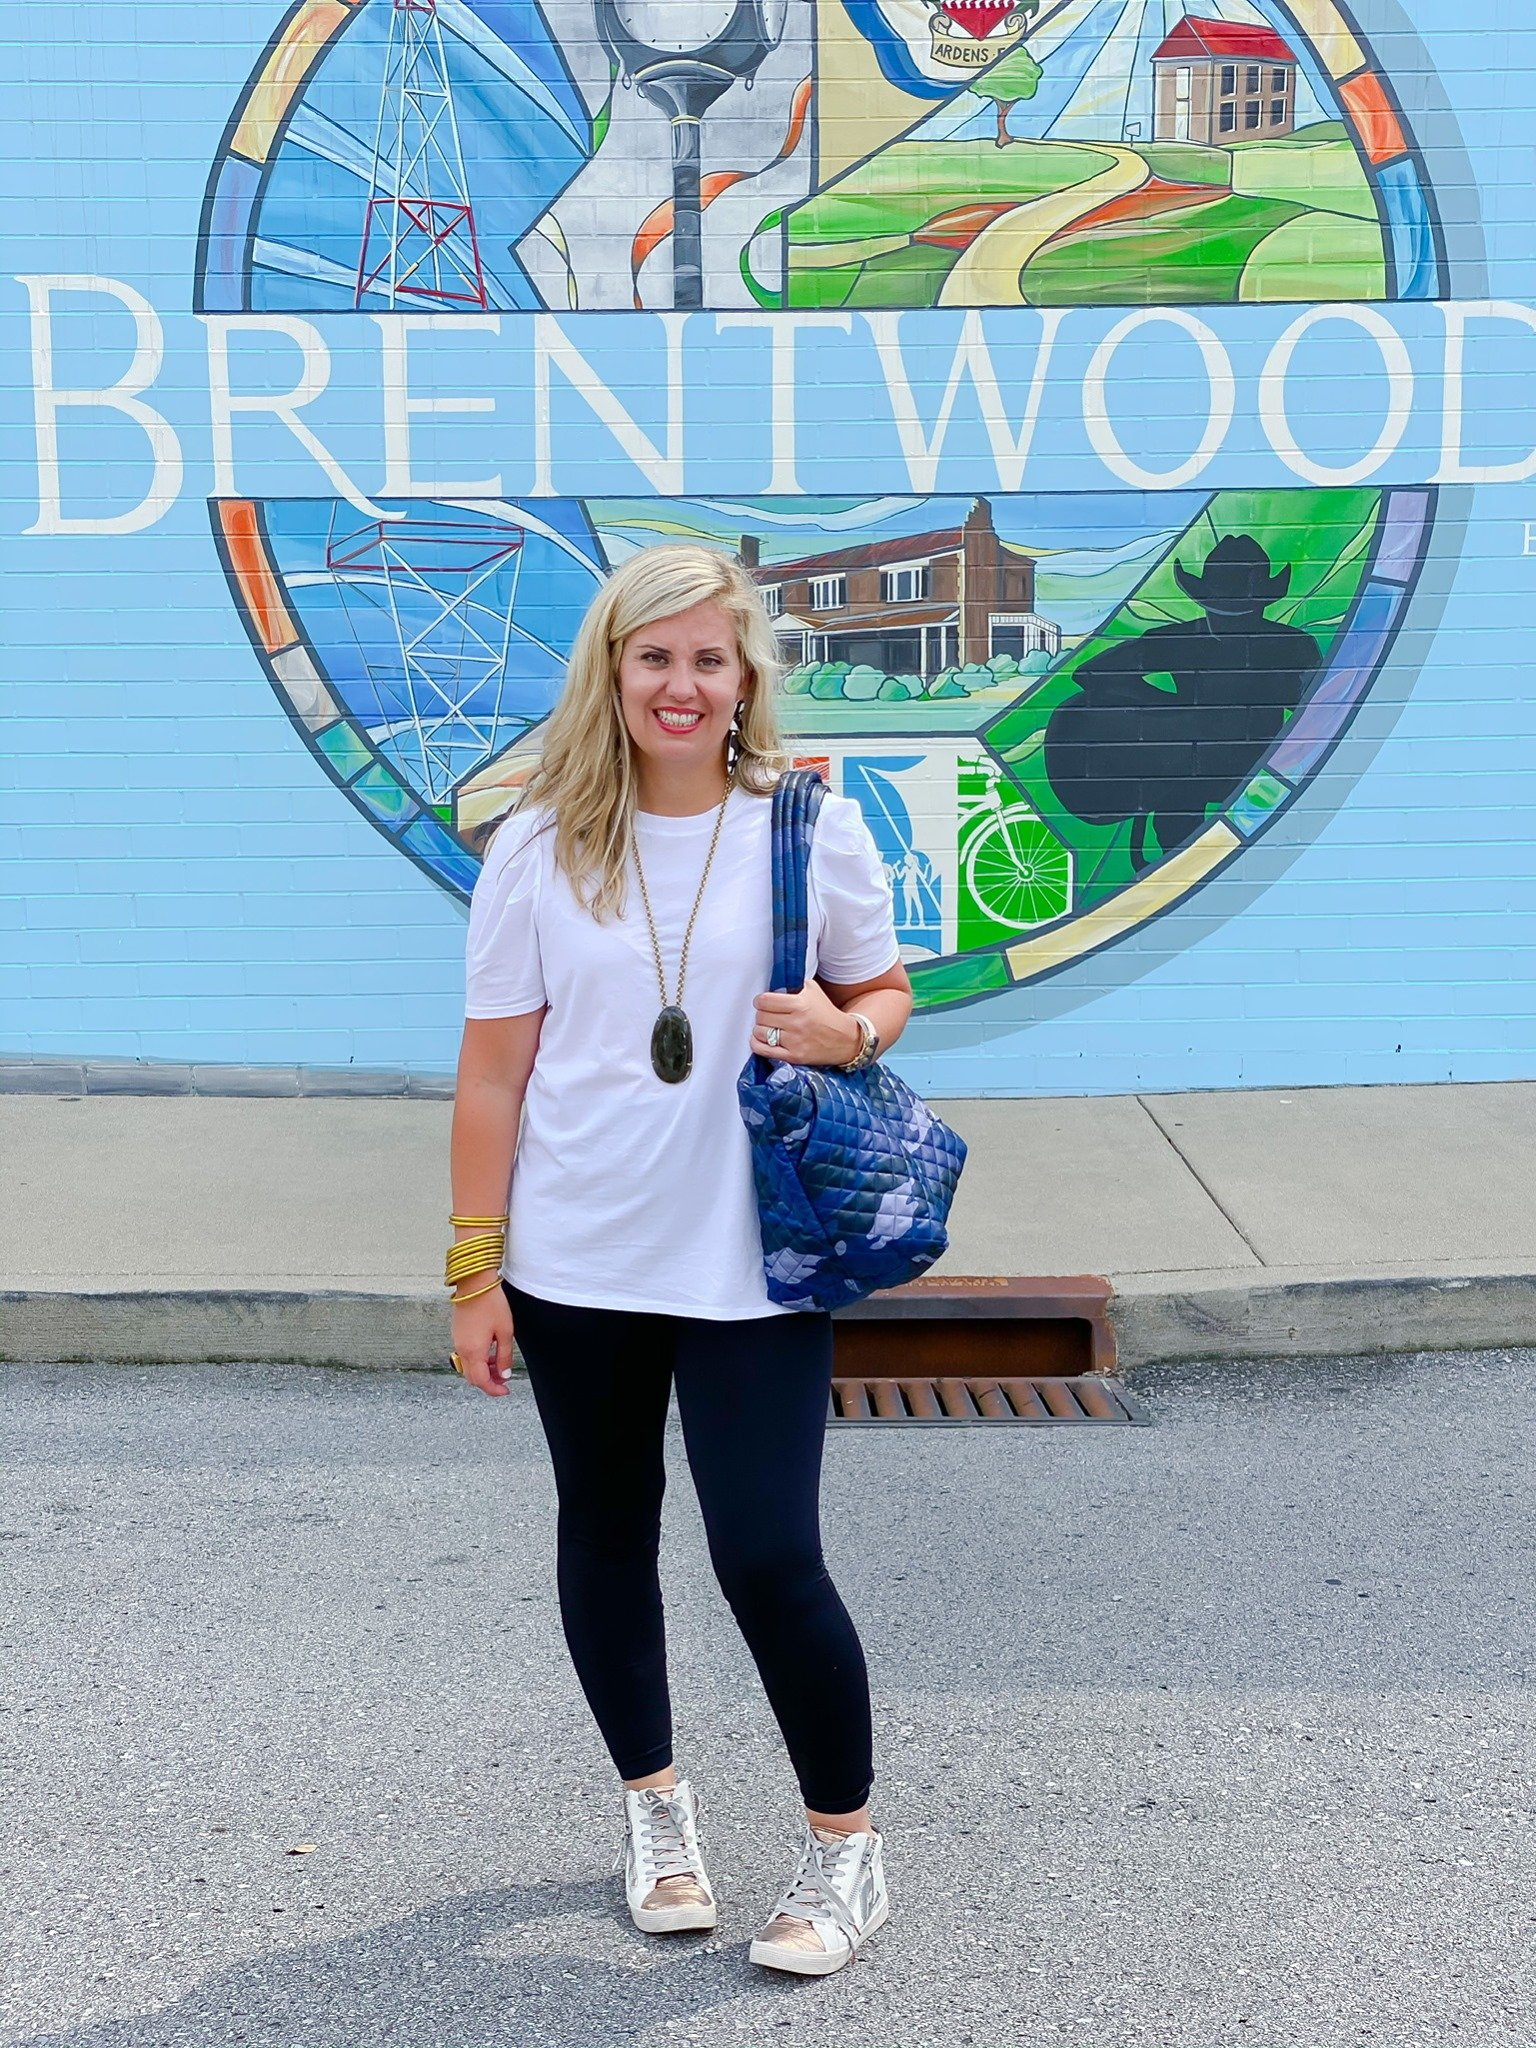 Brentwood Legging paired with Briley White Tee Good Hart